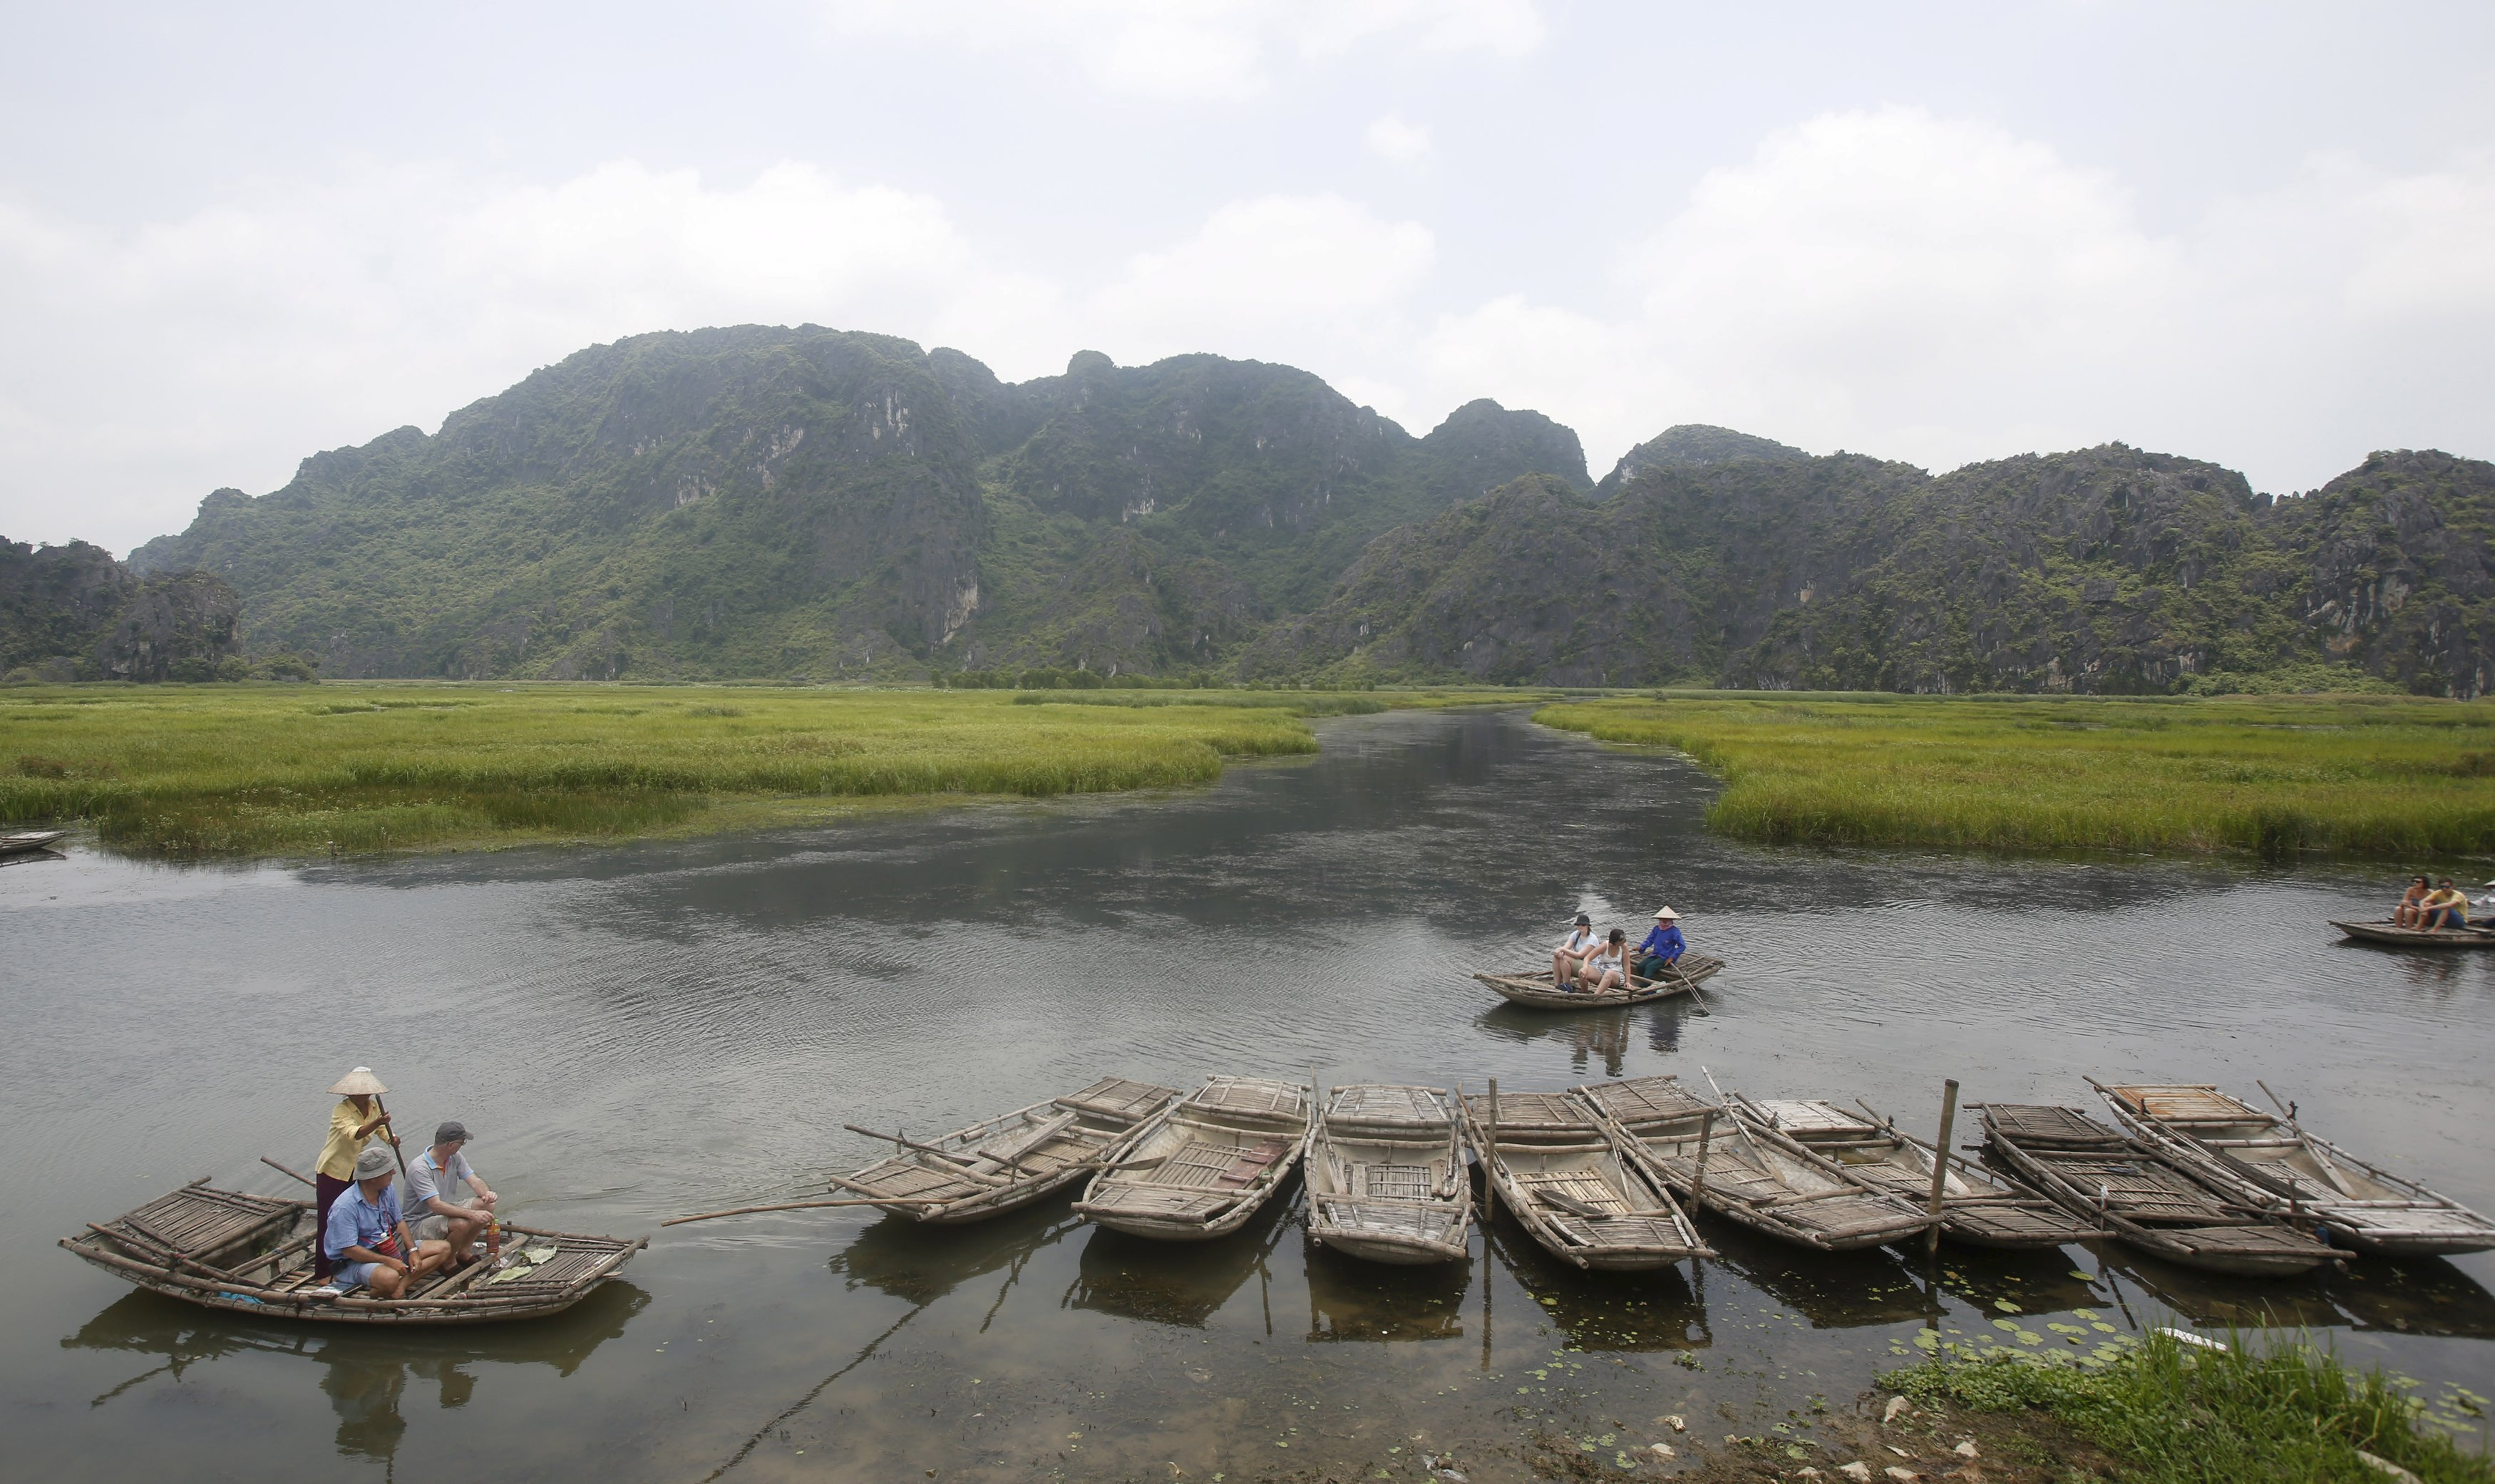 Vietnam to offer visa waivers as visitor drop hurts economy